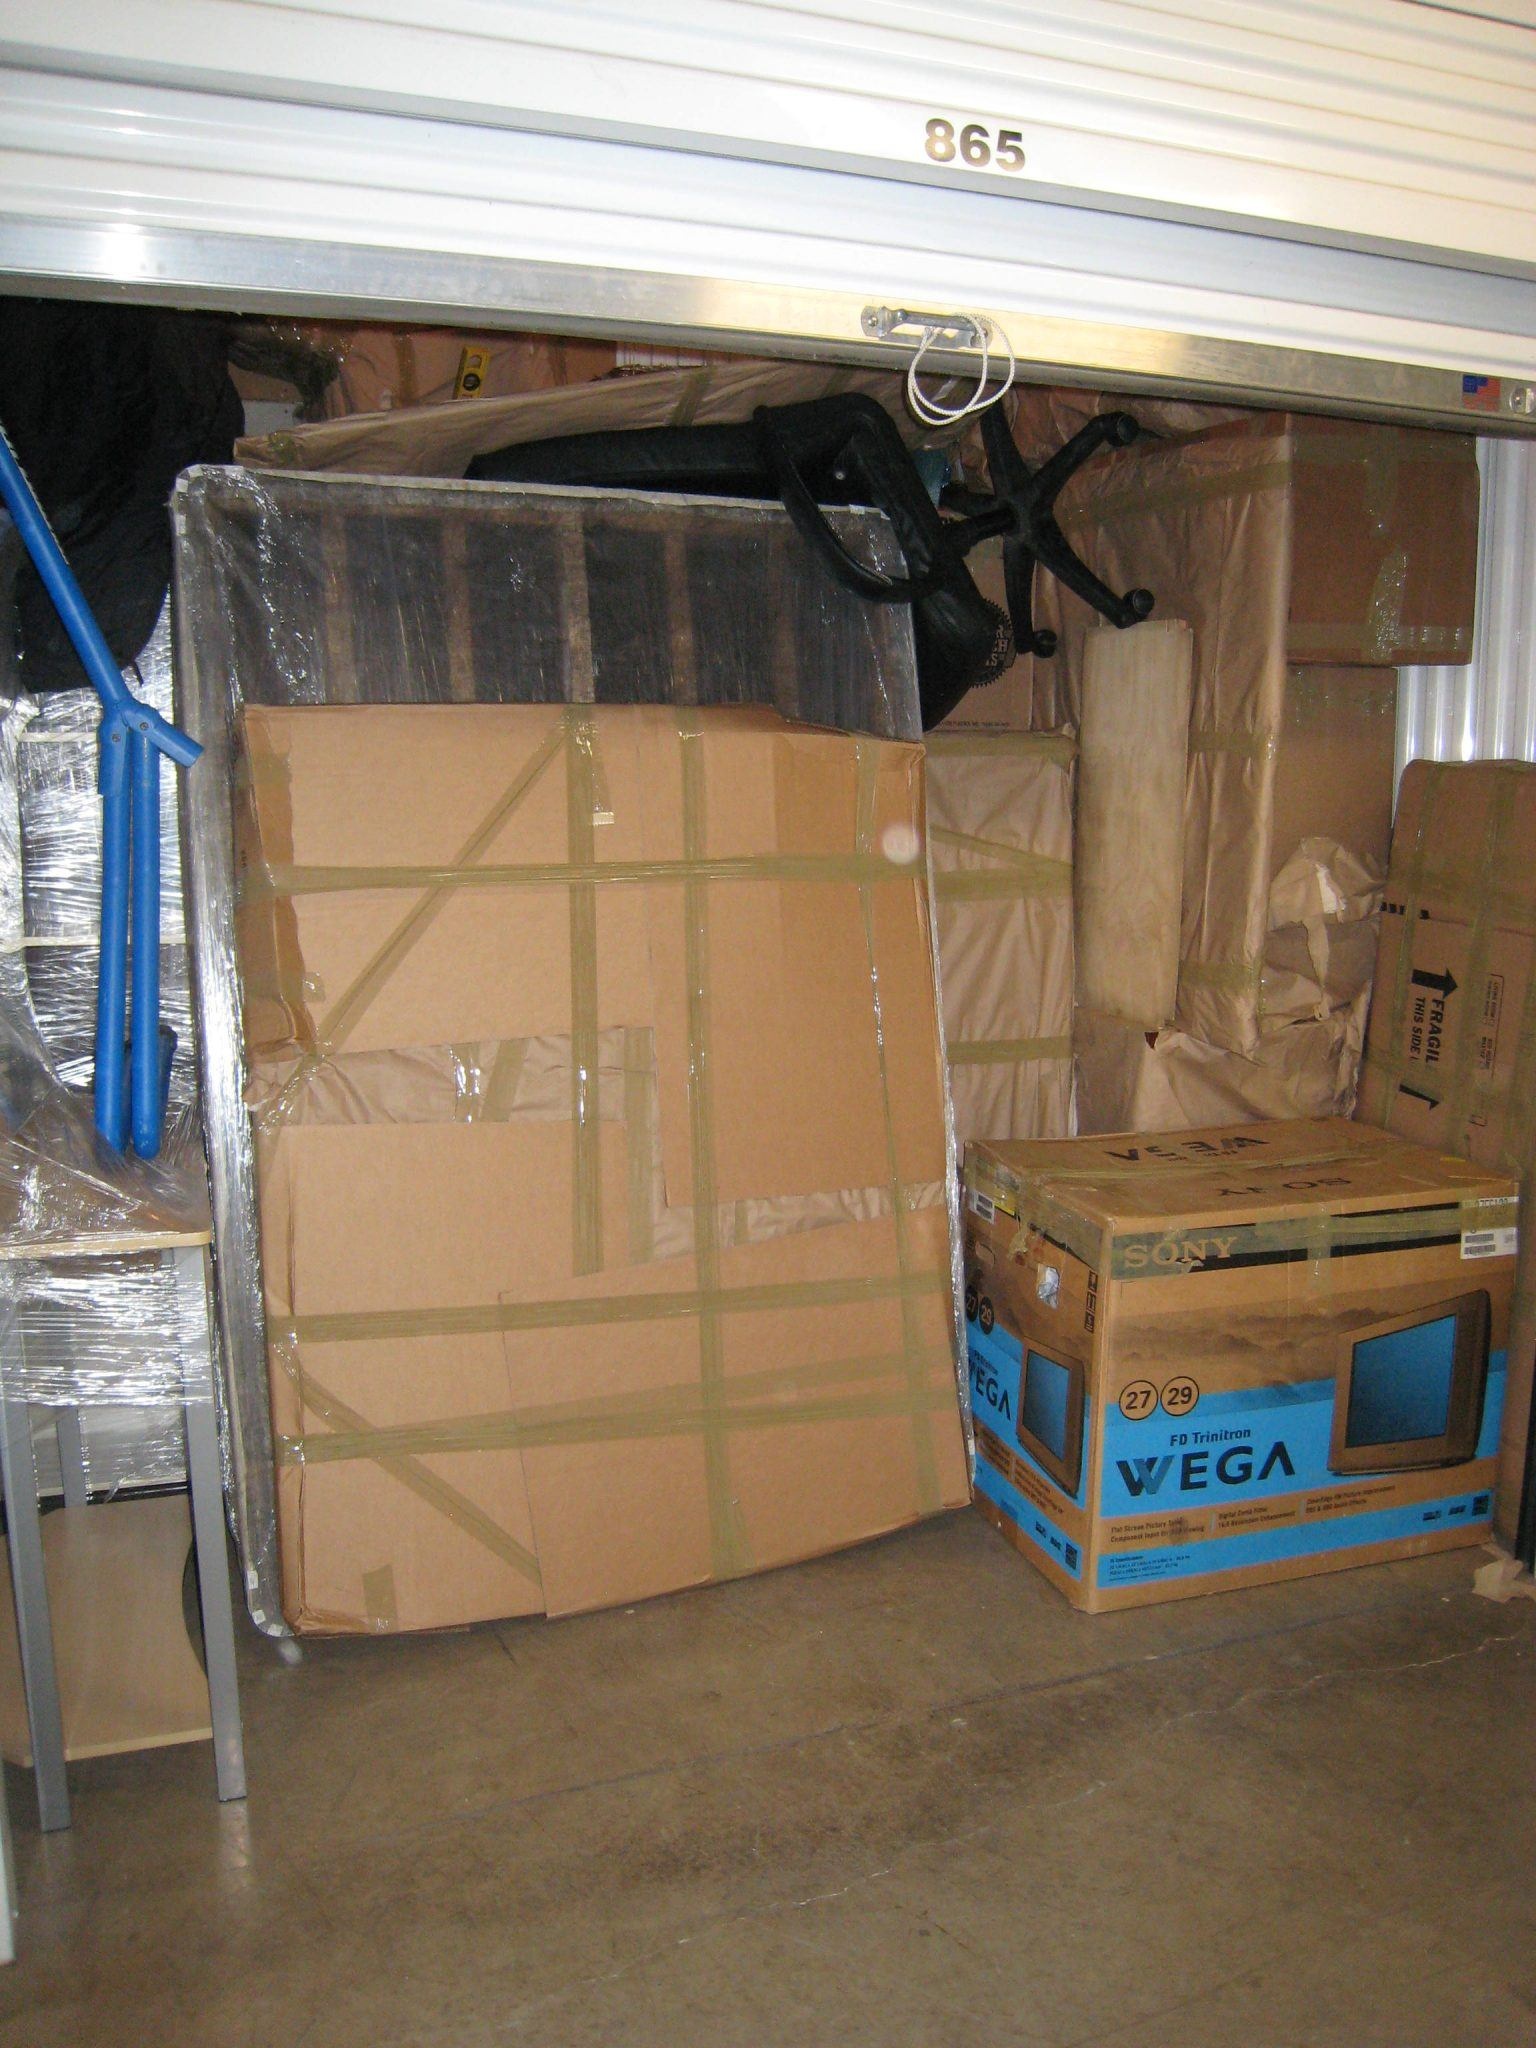 Green Van Lines offers premier storage solutions to make any type of residential or commercial move easier.